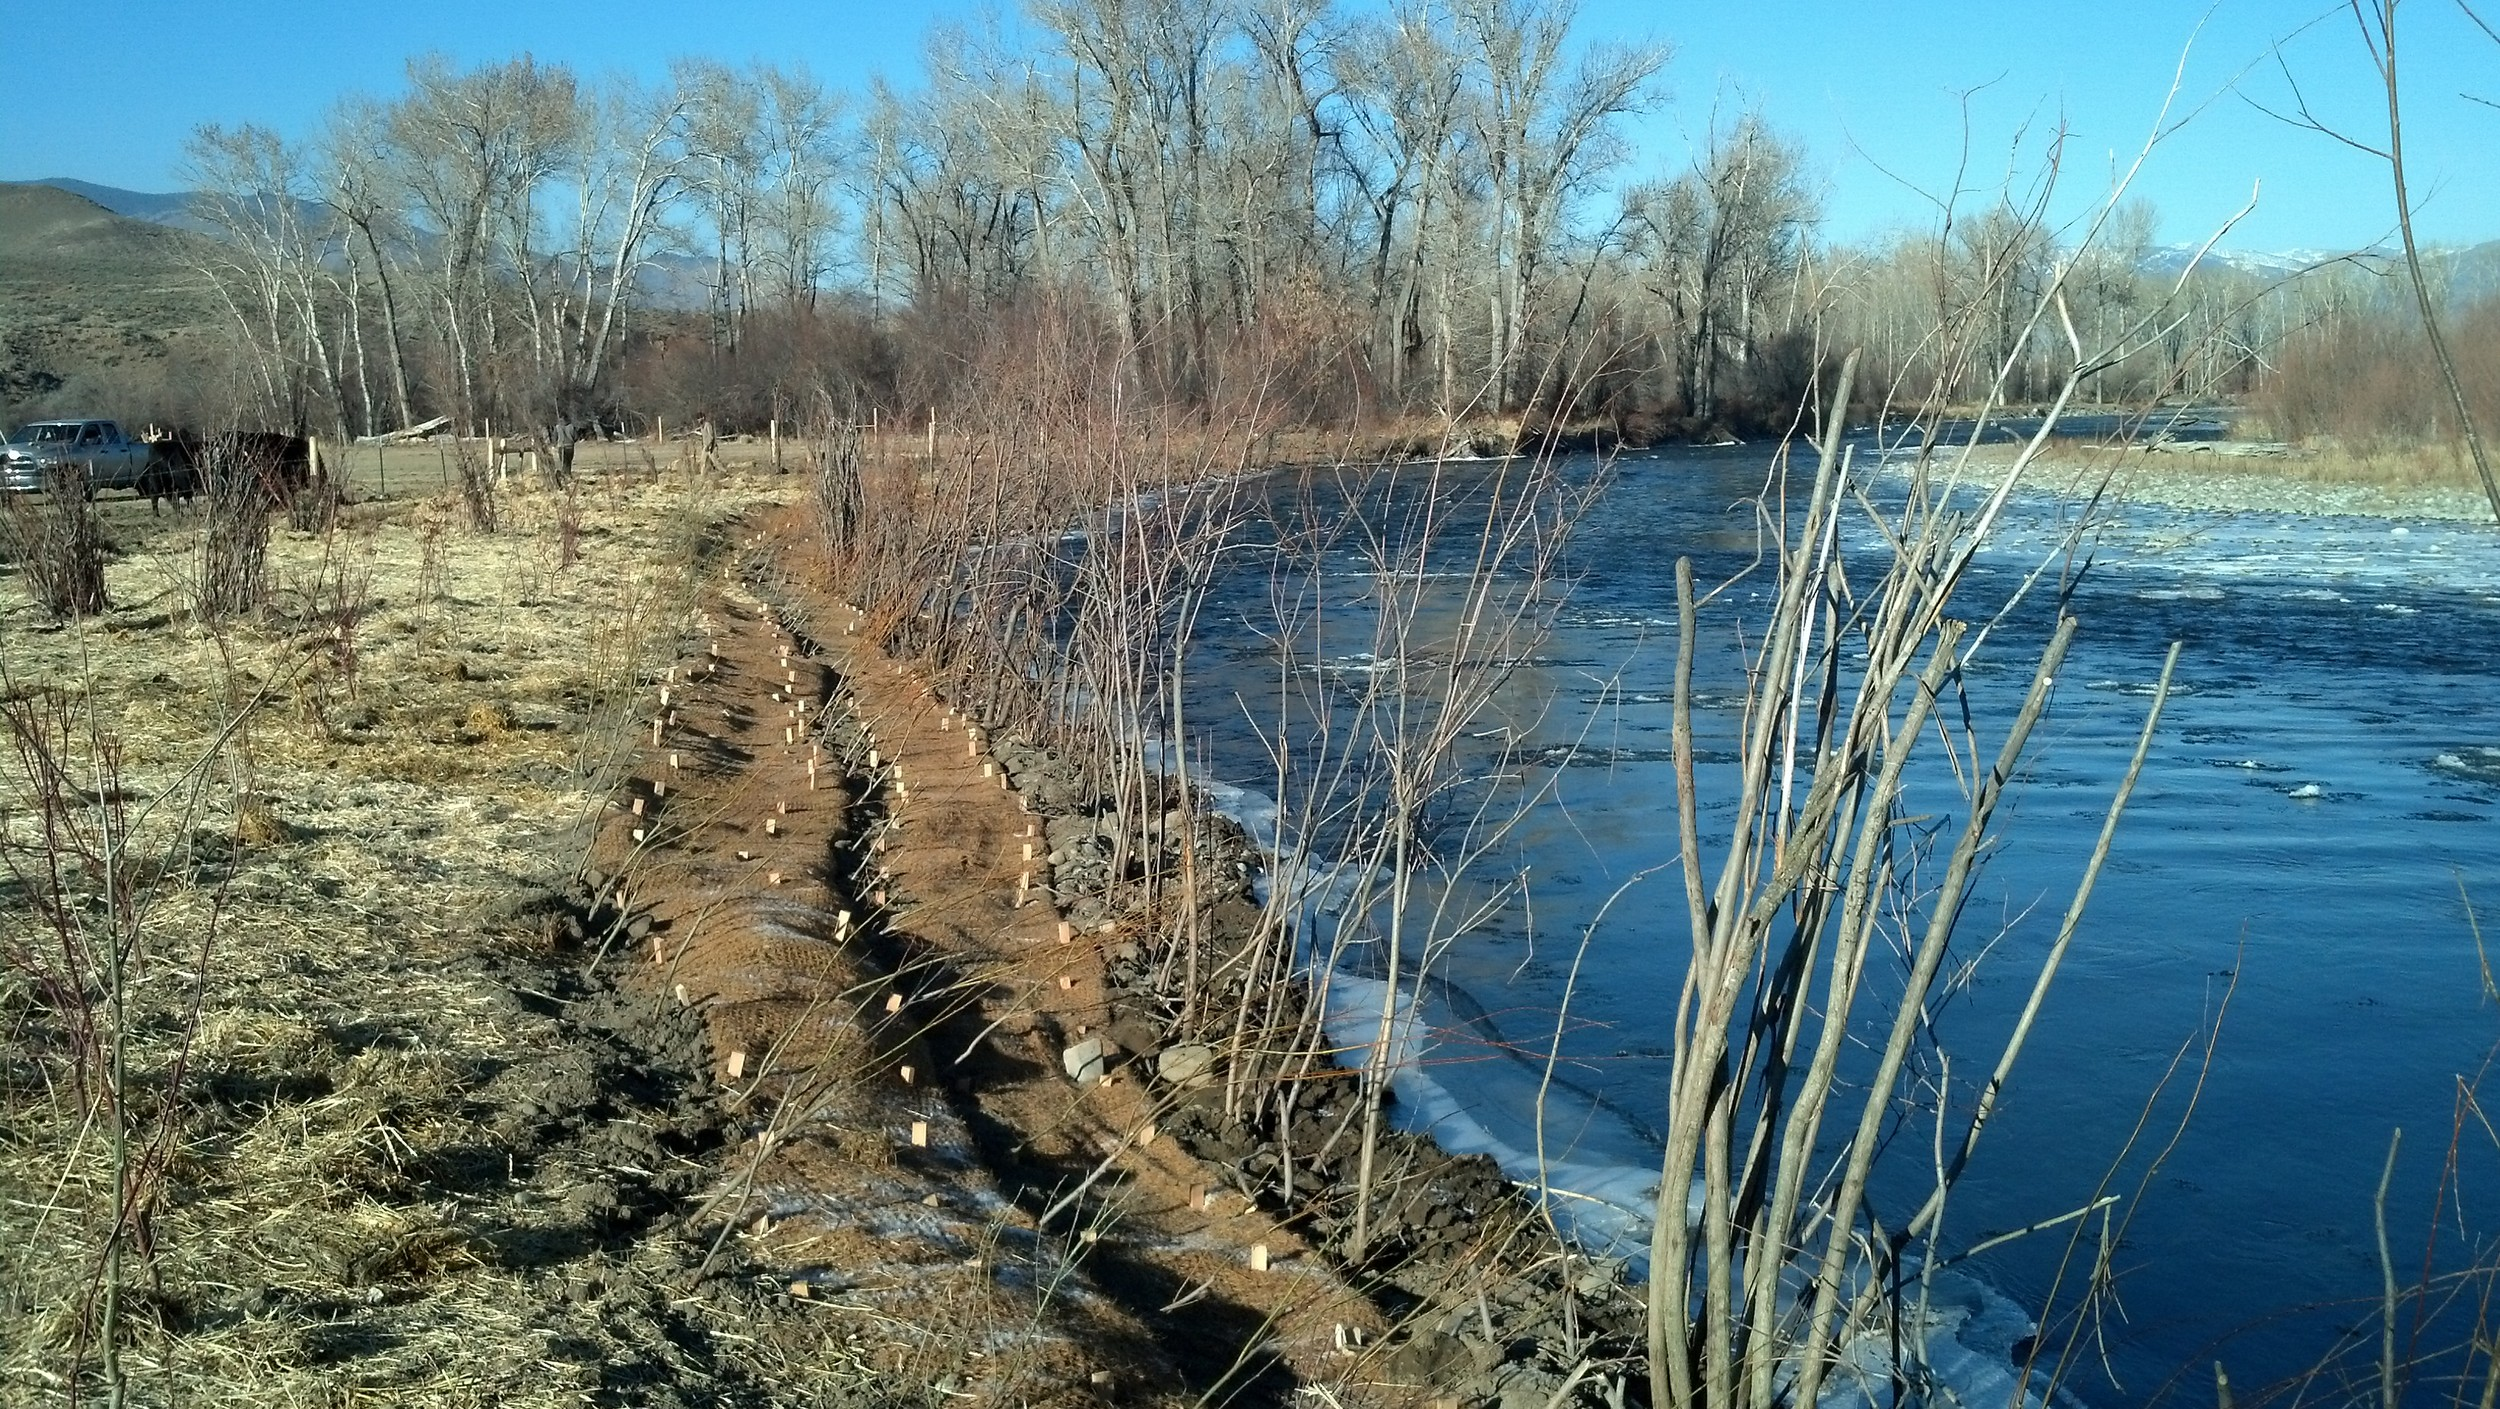 Stream restoration stabilization has been completed, using transplanted willows, soil wraps, and rows of containerized plants